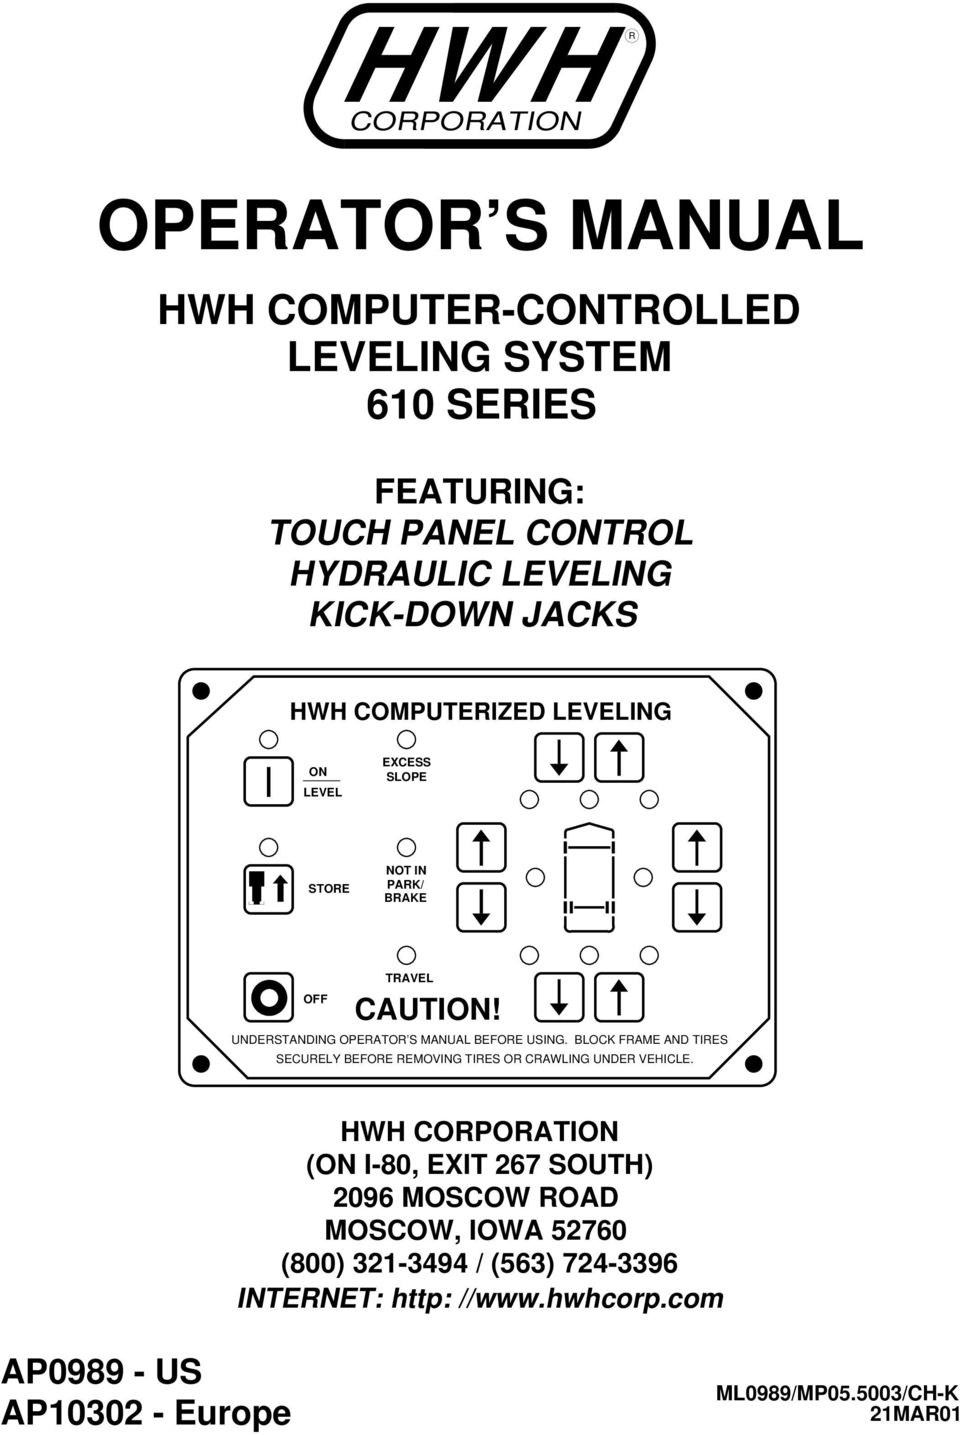 OPERATOR S MANUAL HWH COMPUTER-CONTROLLED LEVELING SYSTEM